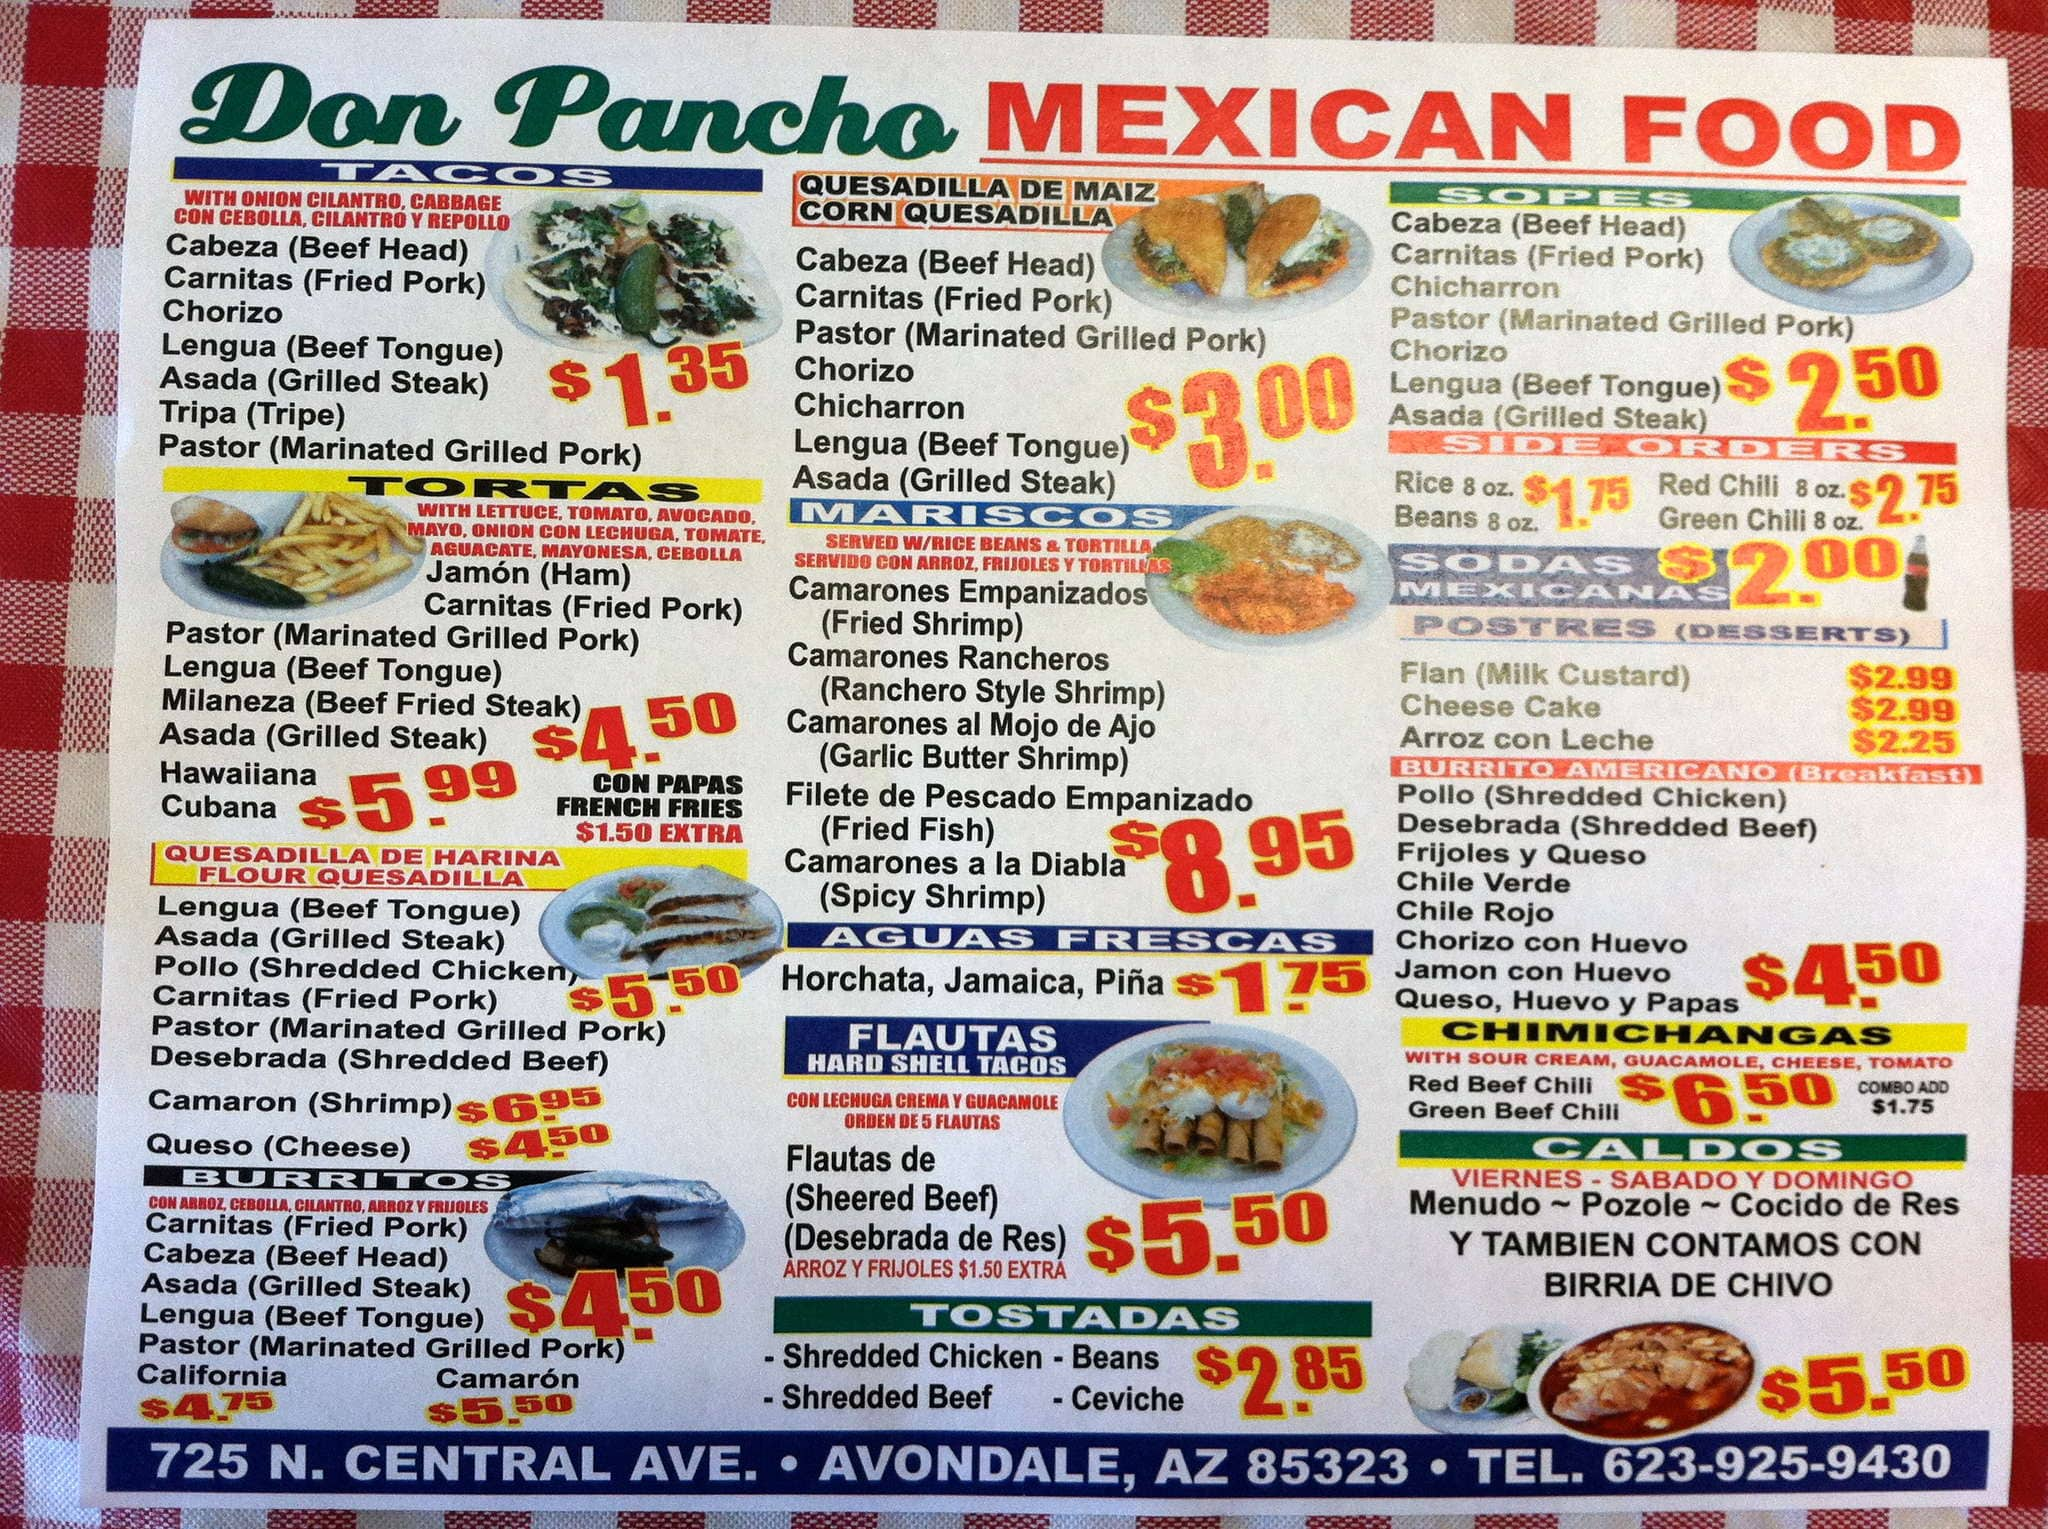 Don Pancho Mexican Food Menu Menu For Don Pancho Mexican Food